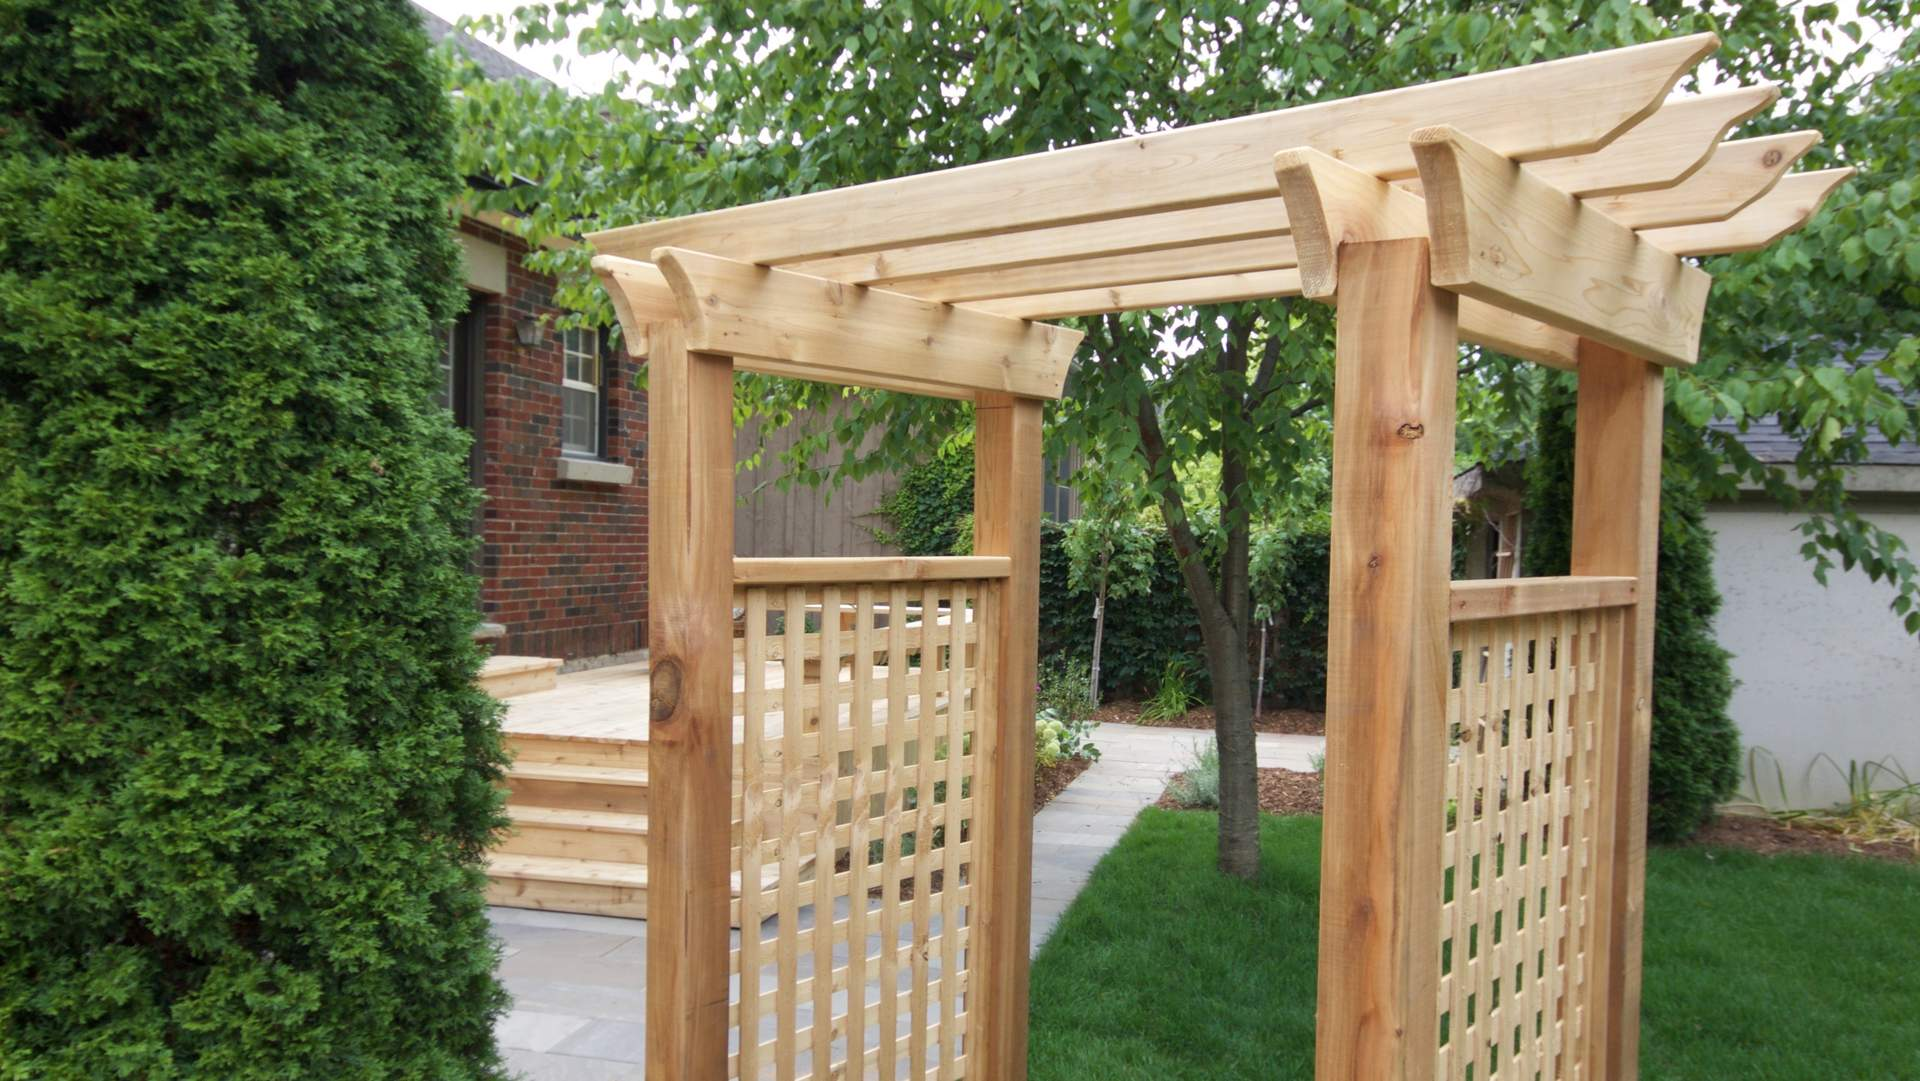 Arbour. Woodwork and deck in the background. Modern landscaping / hardscaping project in London Ontario.